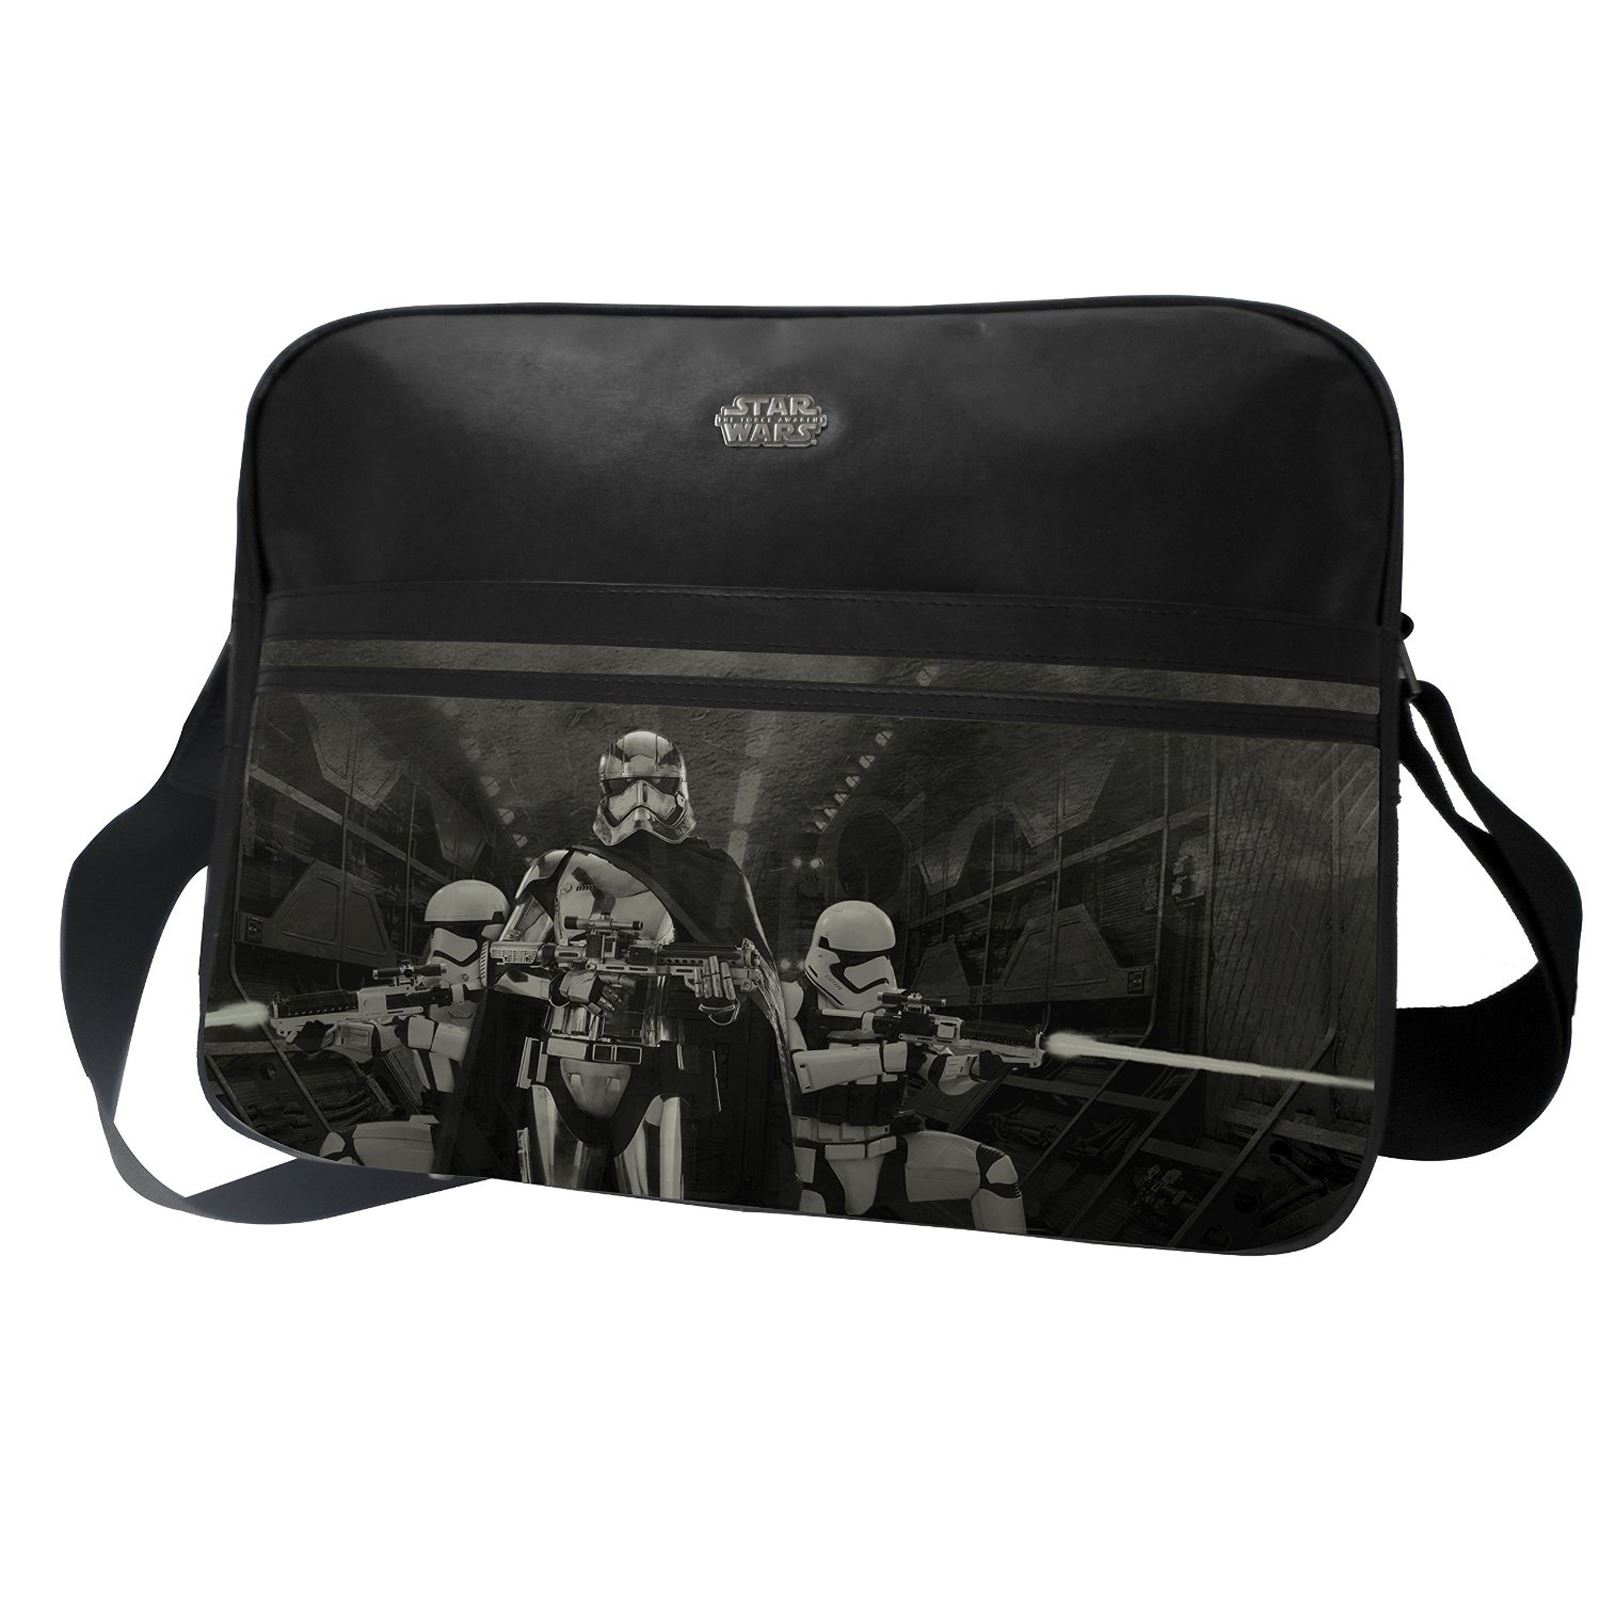 star wars episode vii sturmtruppler kuriertasche works college kinder neu ebay. Black Bedroom Furniture Sets. Home Design Ideas